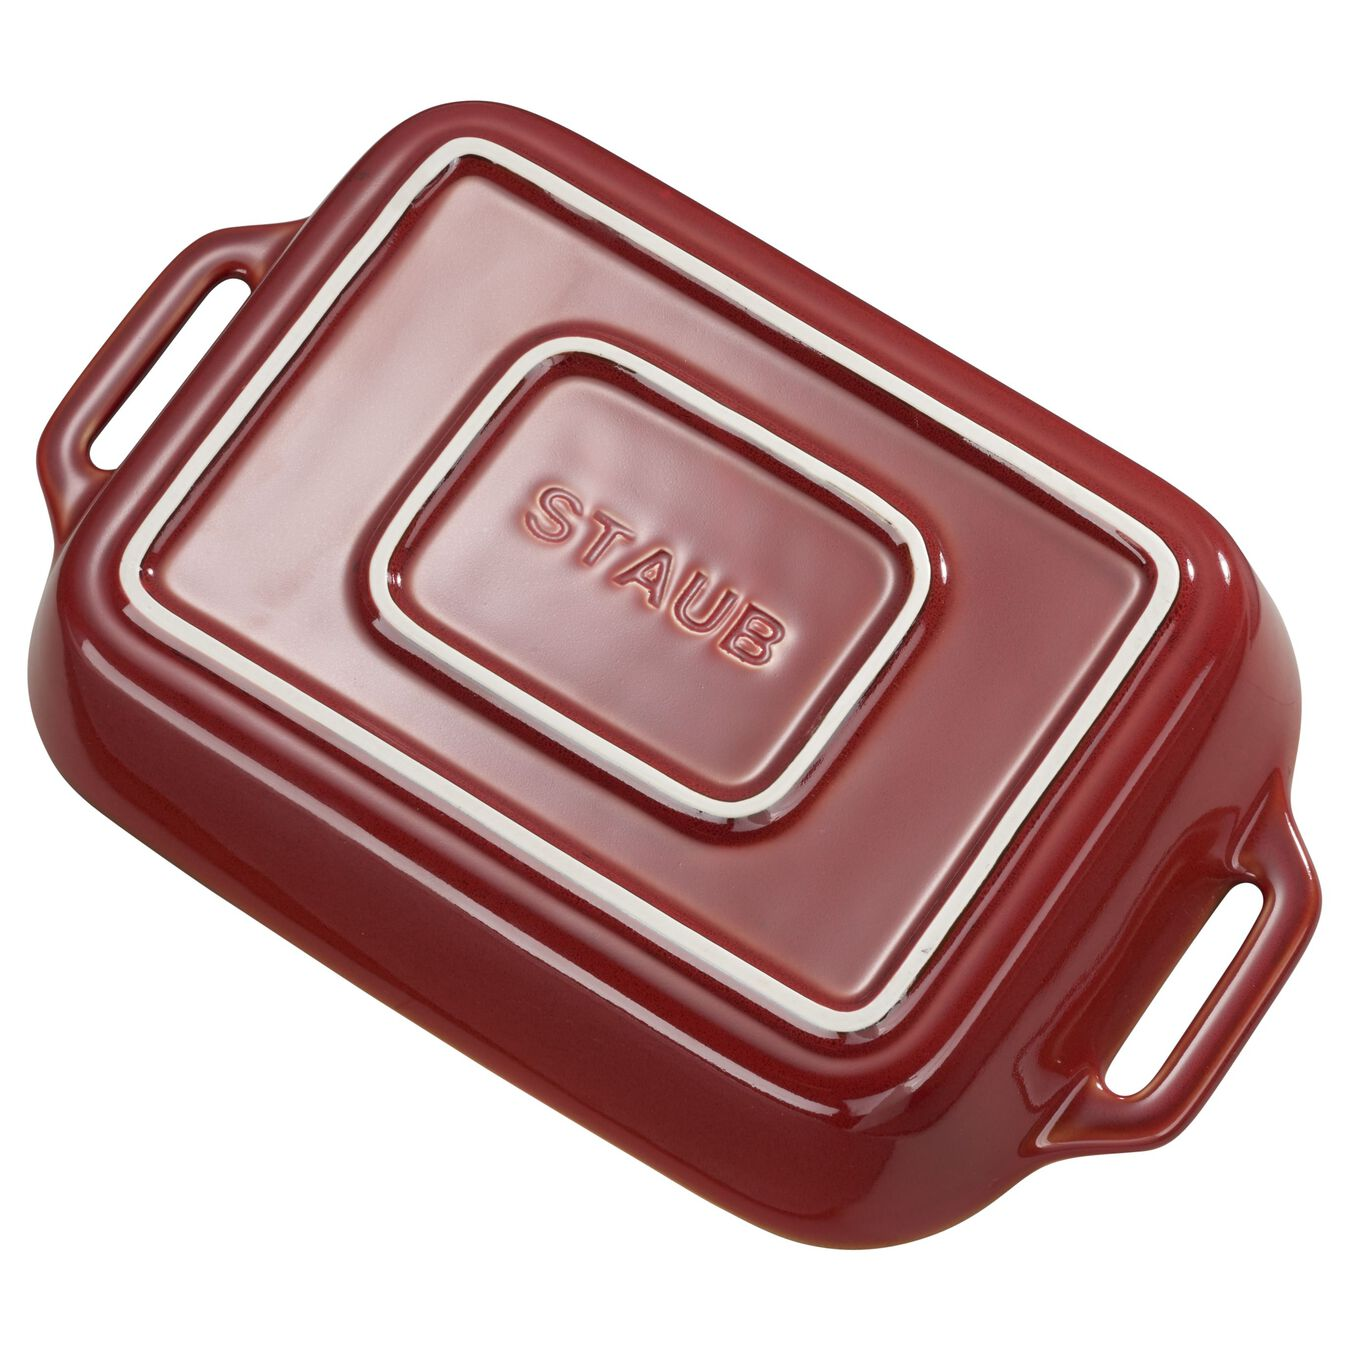 2-pc, square, Rectangular Baking Dish Set, red,,large 3